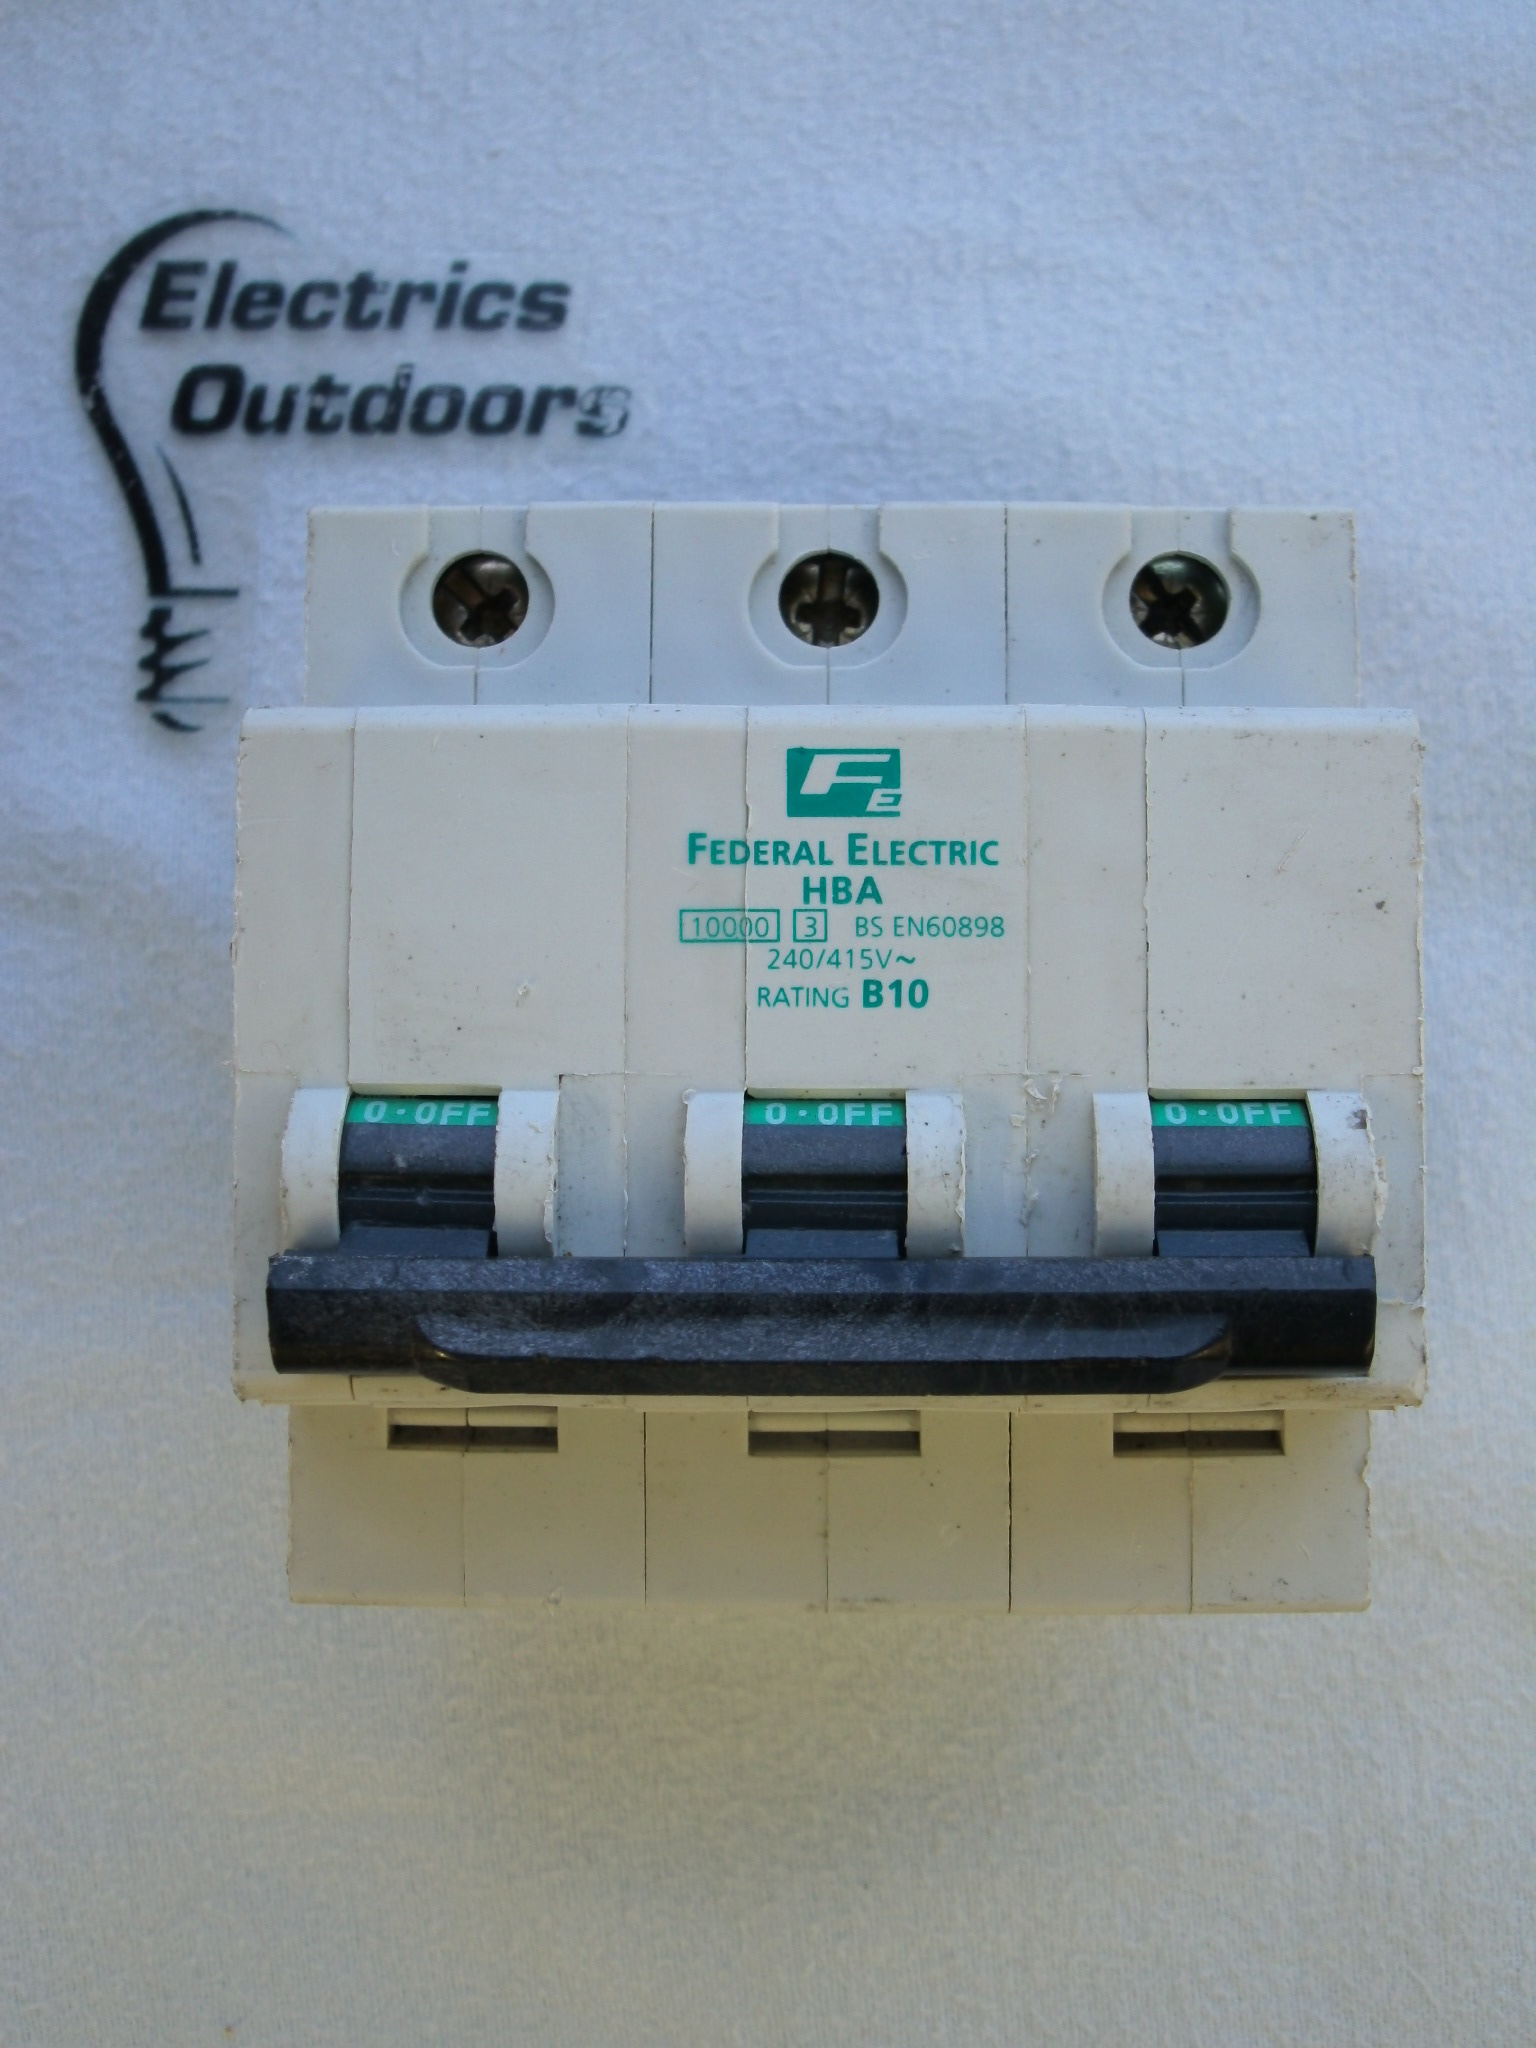 FEDERAL ELECTRIC 10 AMP TYPE B 10 kA TRIPLE POLE MCB CIRCUIT BREAKER HBA STABLOK